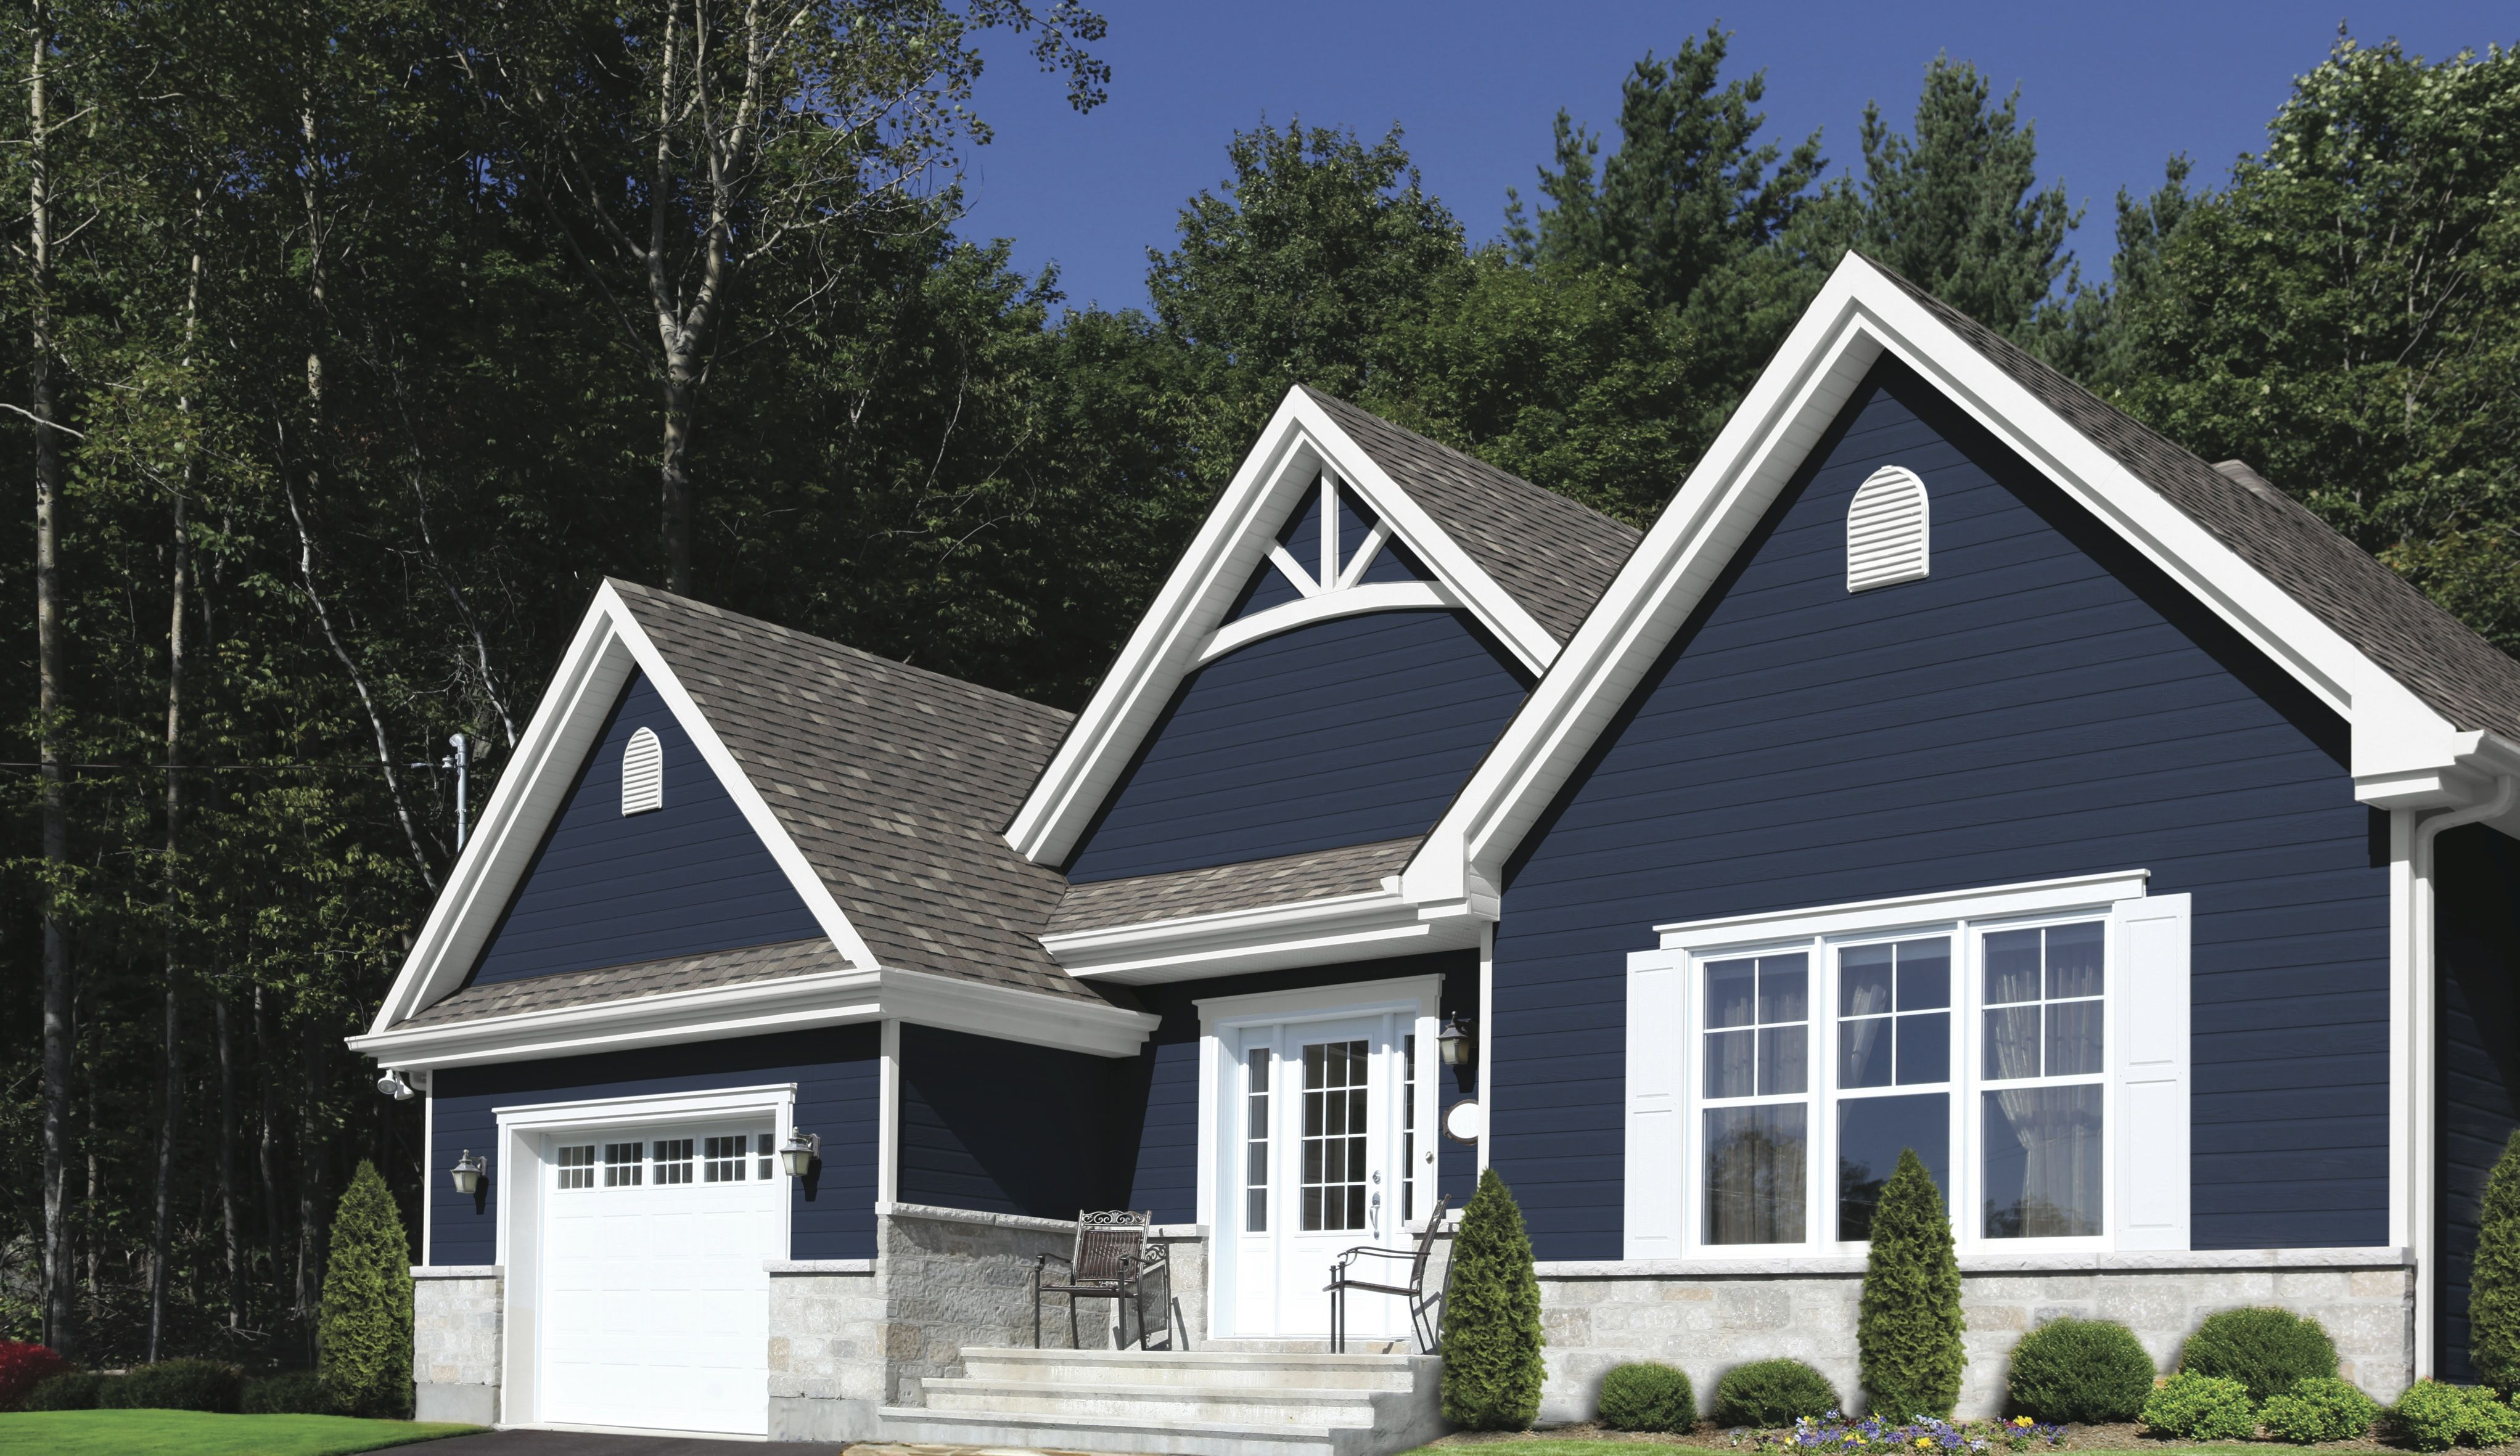 Us splash in 2019 curb appeal house paint exterior - White house with blue trim ...